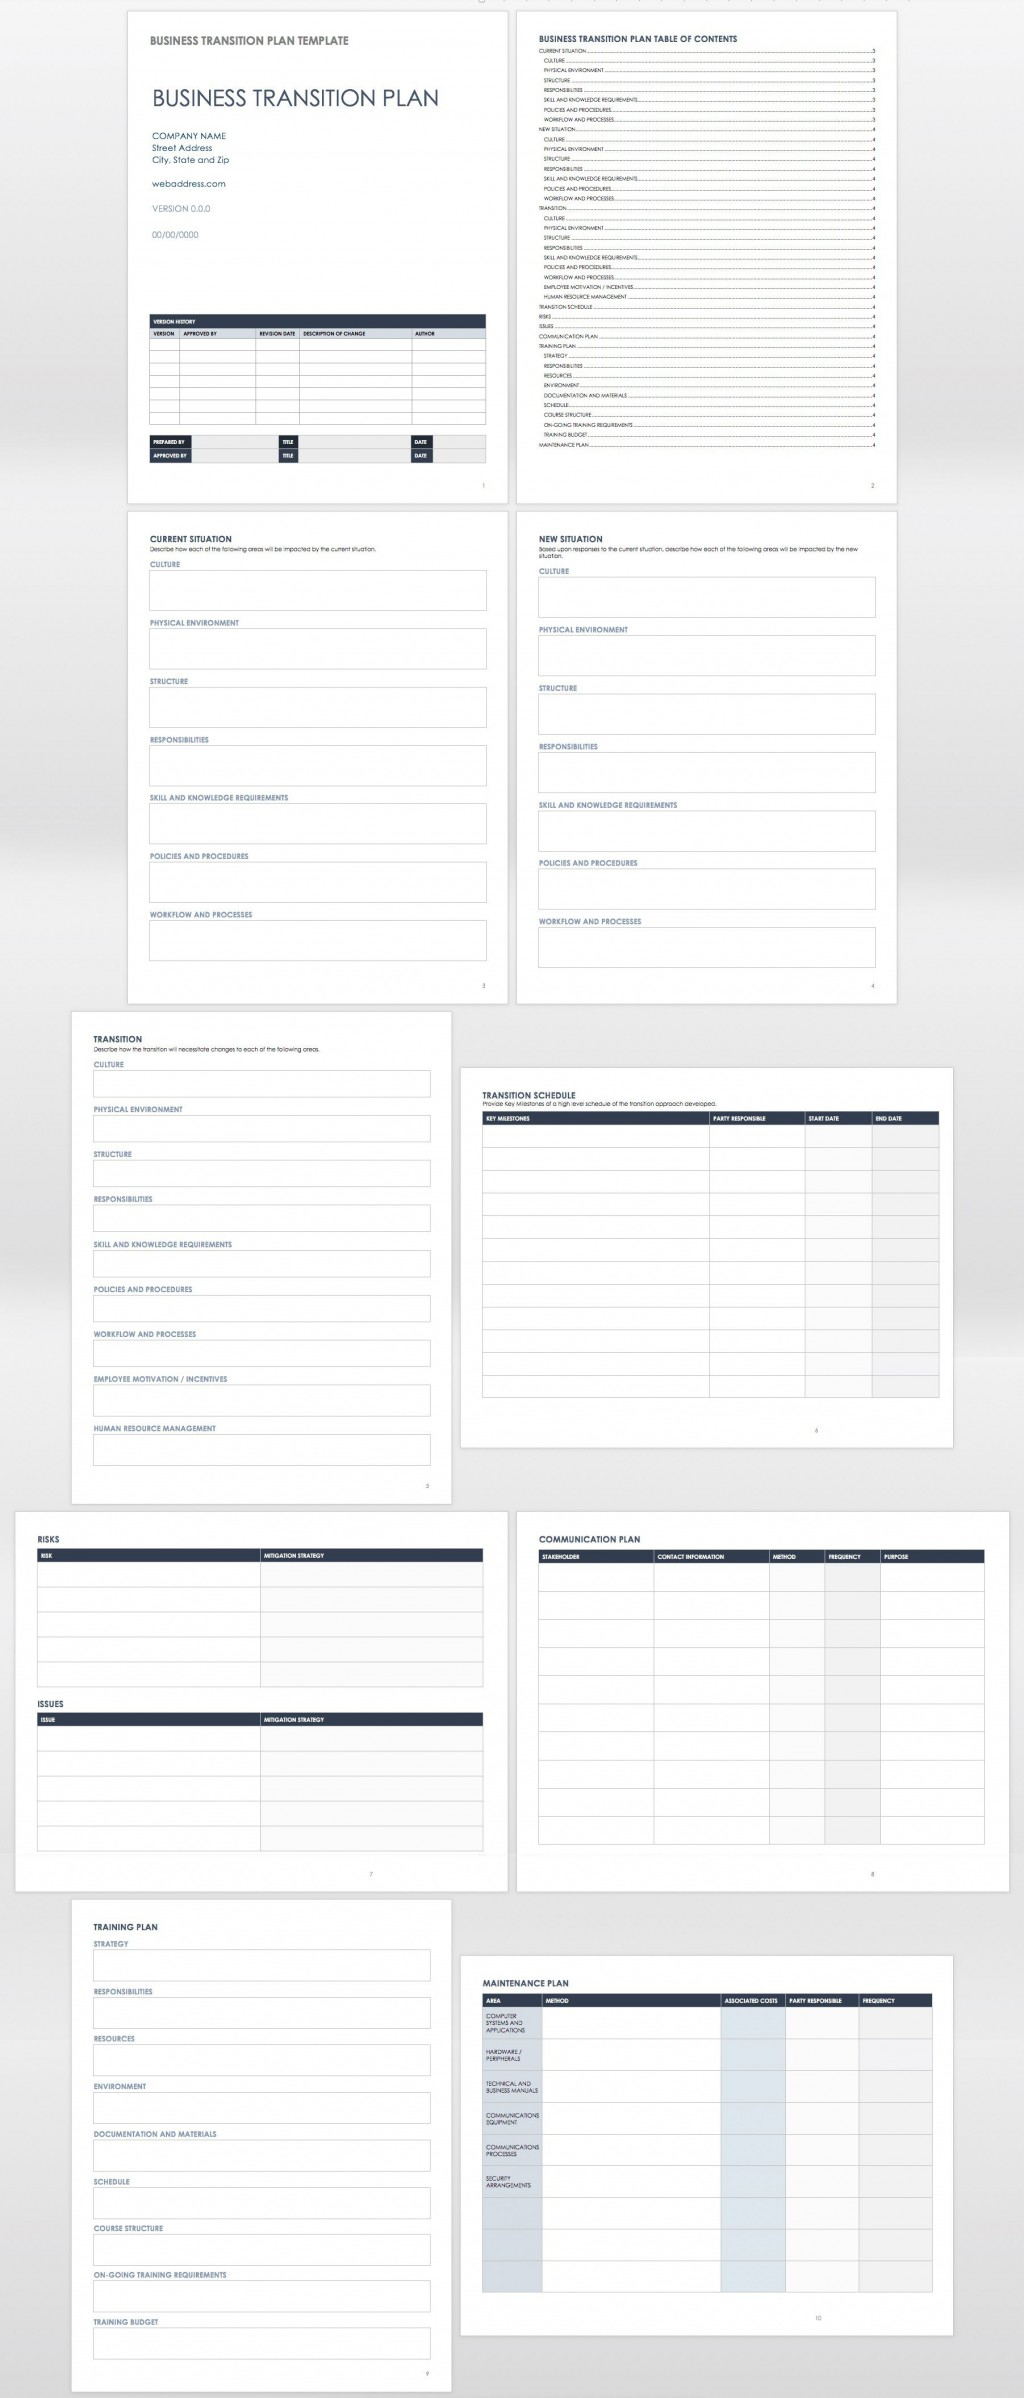 004 Imposing Project Transition Plan Template Idea  Excel Download Software SampleLarge